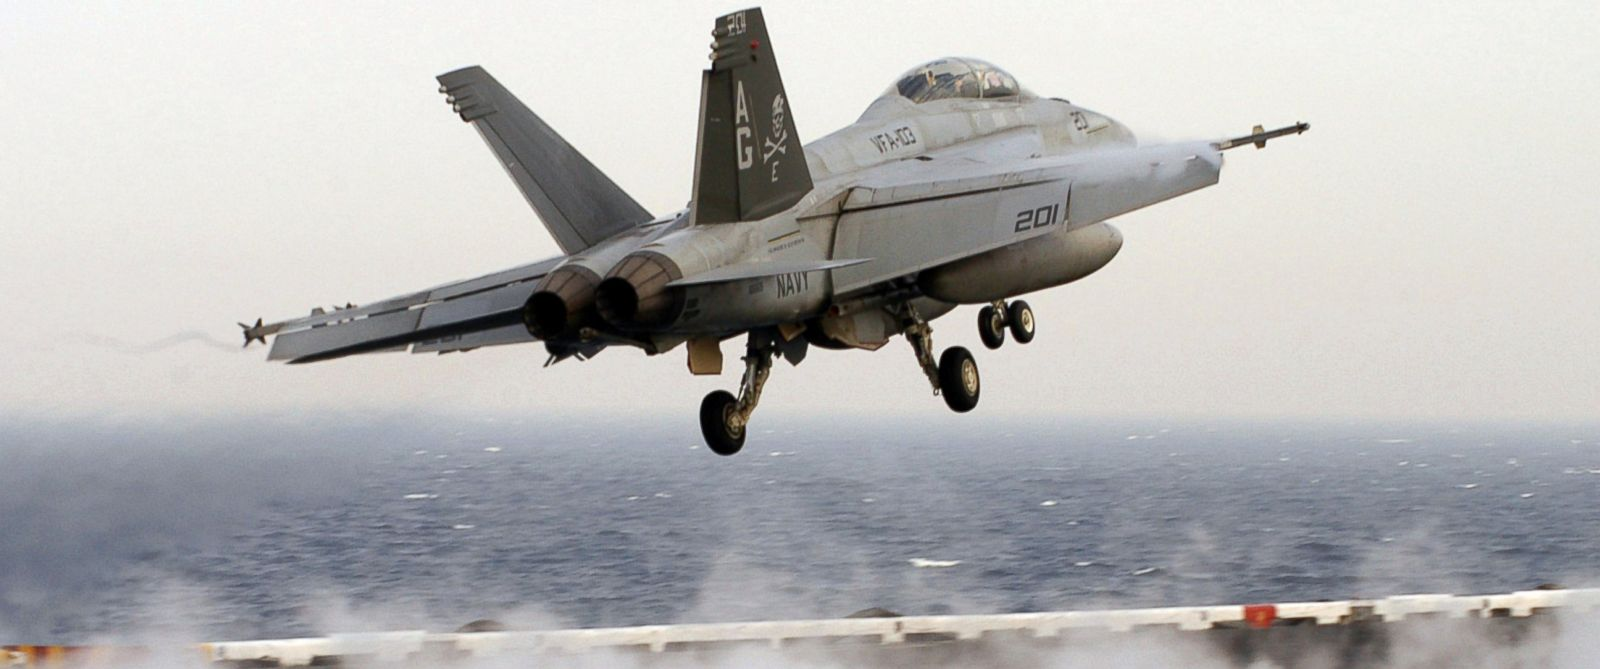 PHOTO: An F/A-18F Super Hornet launches from the flight deck of Nimitz-class aircraft carrier USS Dwight D. Eisenhower in the Persian Gulf in this March 27, 2007 file photo.